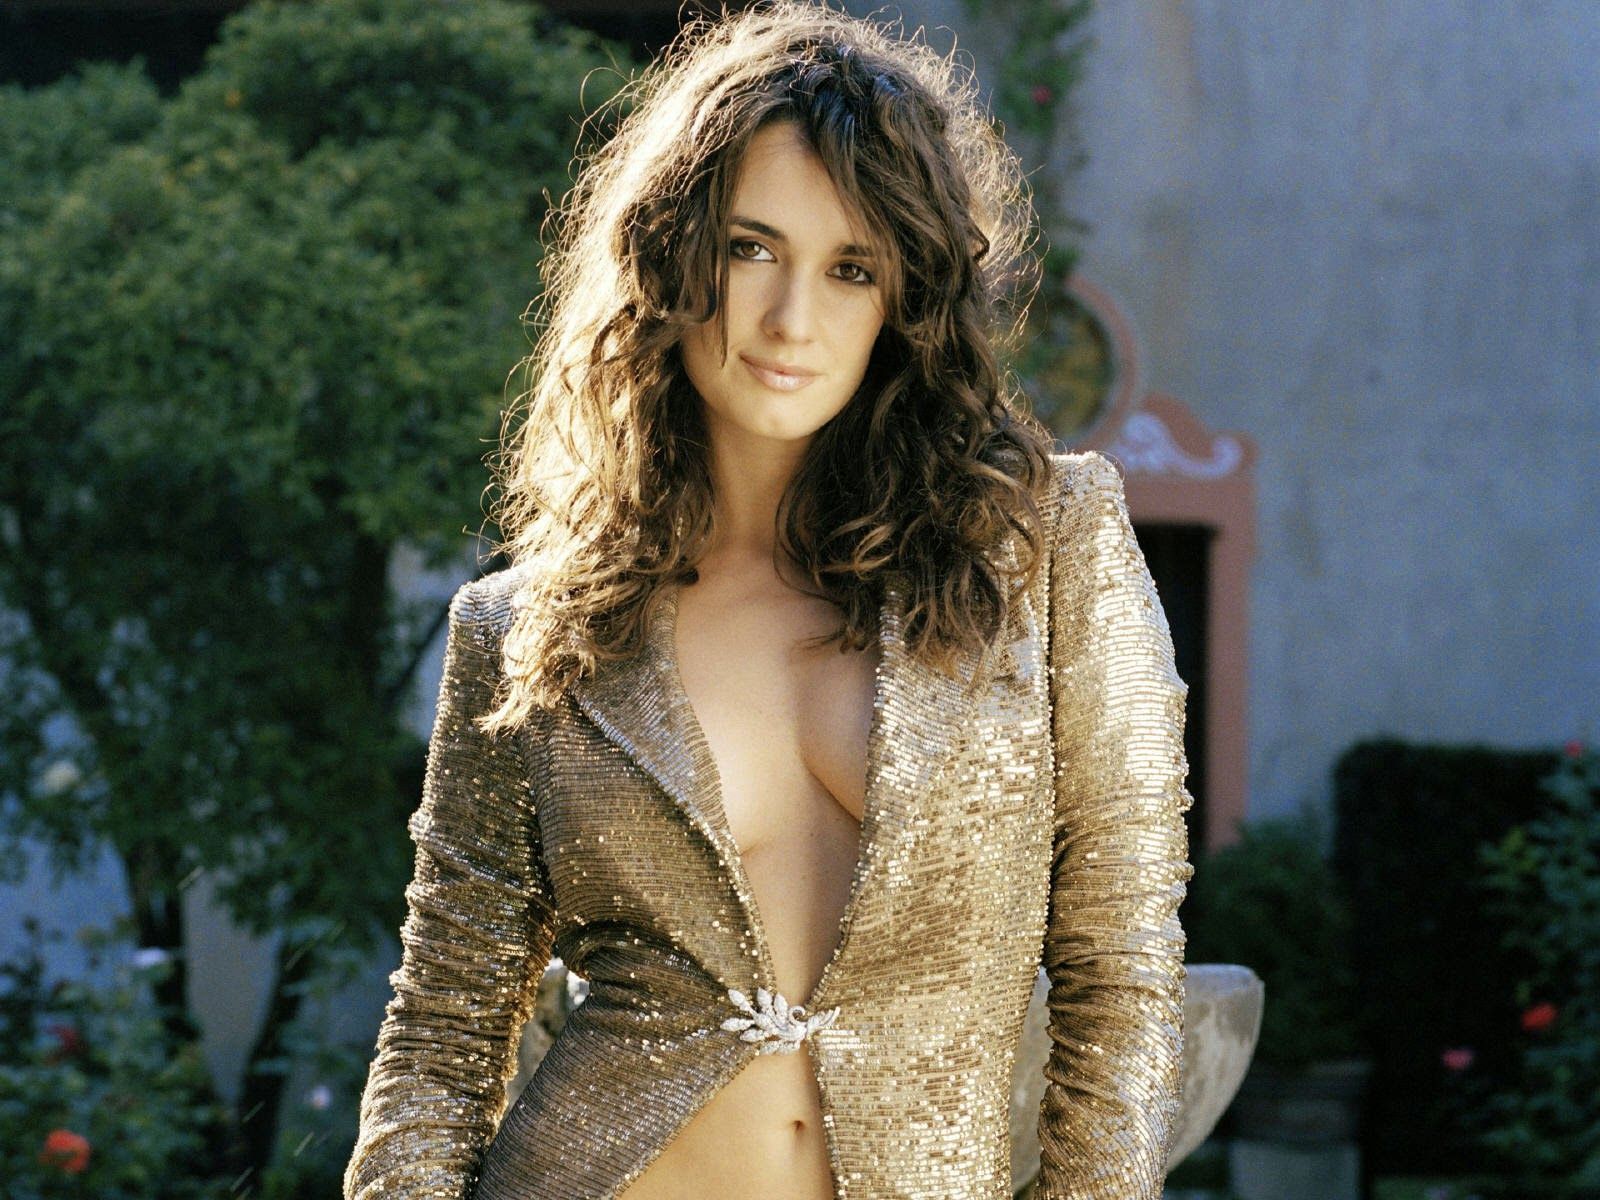 Paz Vega Wallpapers High Resolution and Quality Download Natalie Portman Wiki